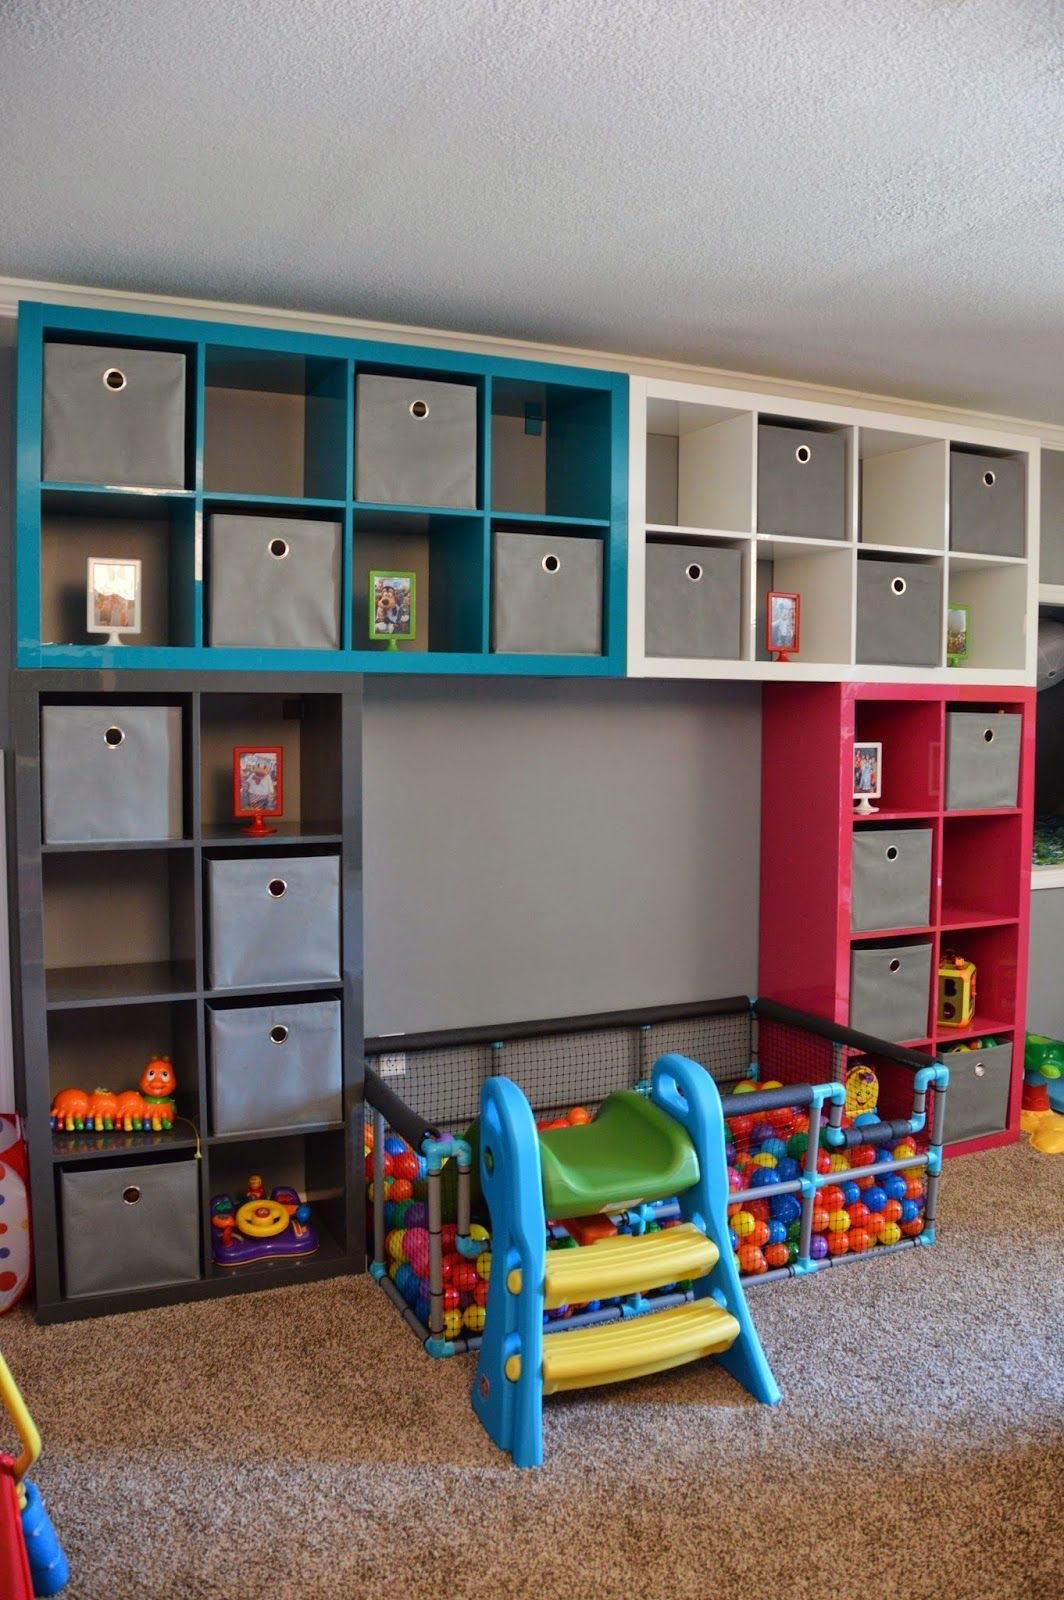 7 1 Toy Storage Ideas 2019 Diy Plans In A Small Space Toy Rooms Ikea Kids Playroom Boy Room